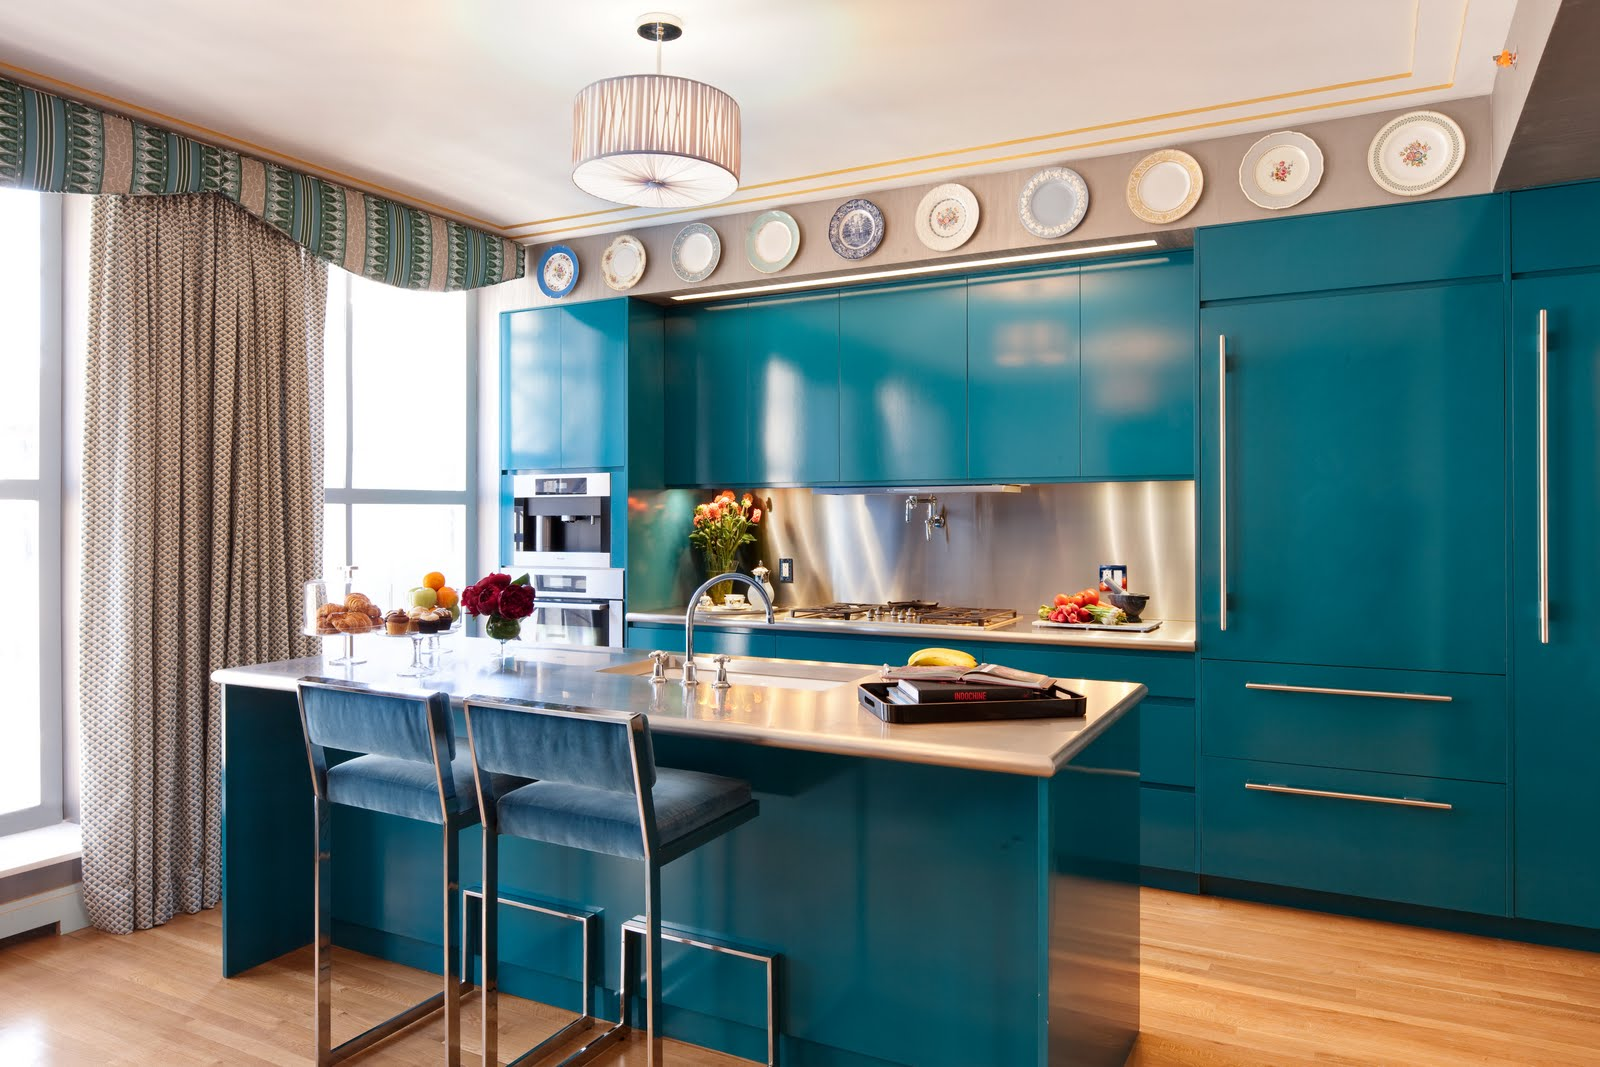 Colors For A Kitchen should kitchen cabinets match the hardwood floors?